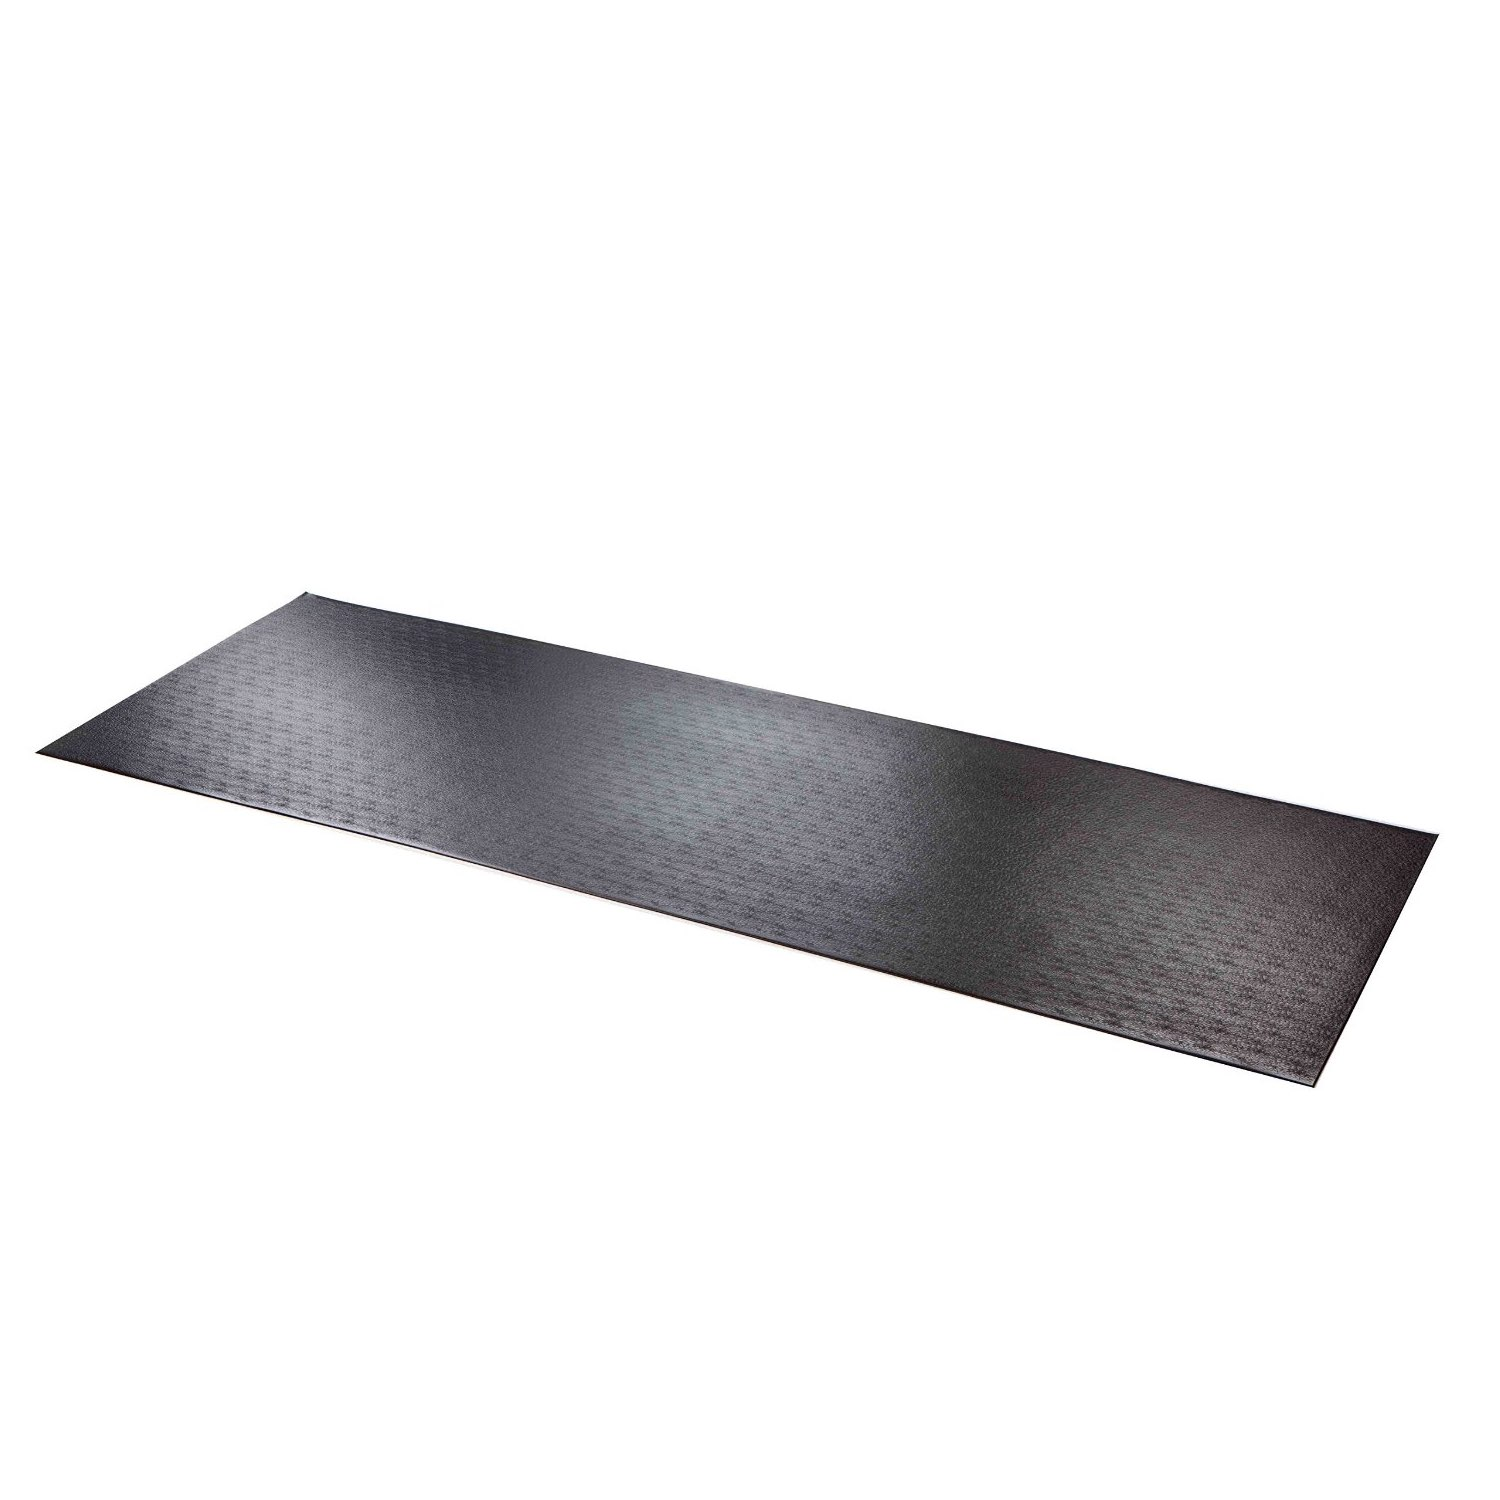 ROWING MACHINE MAT